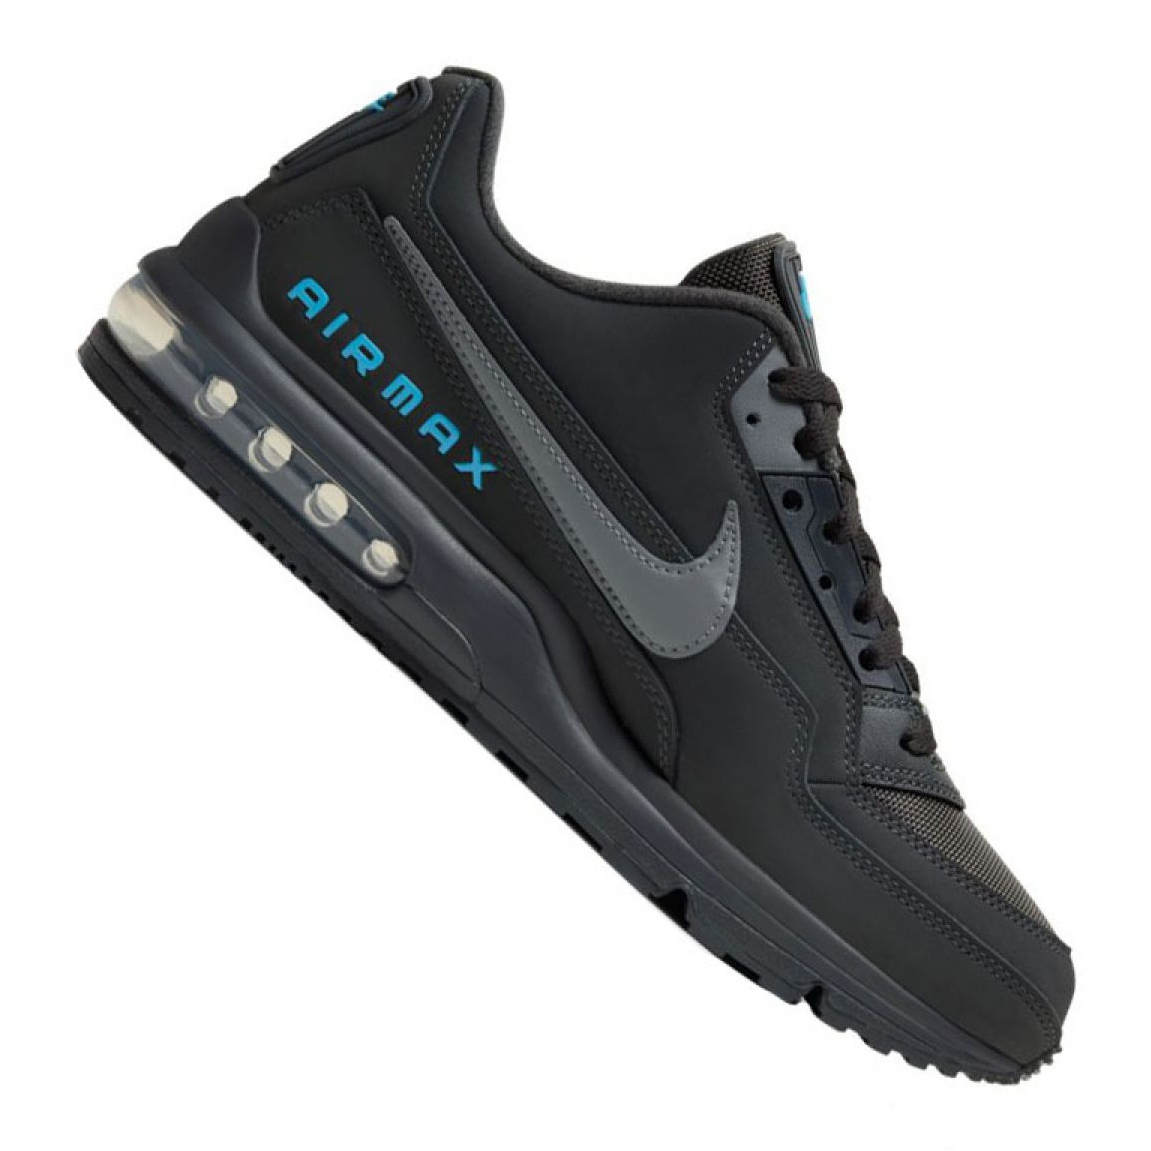 Detalles de Zapatillas Nike Air Max Ltd 3 M CT2275 002 negro